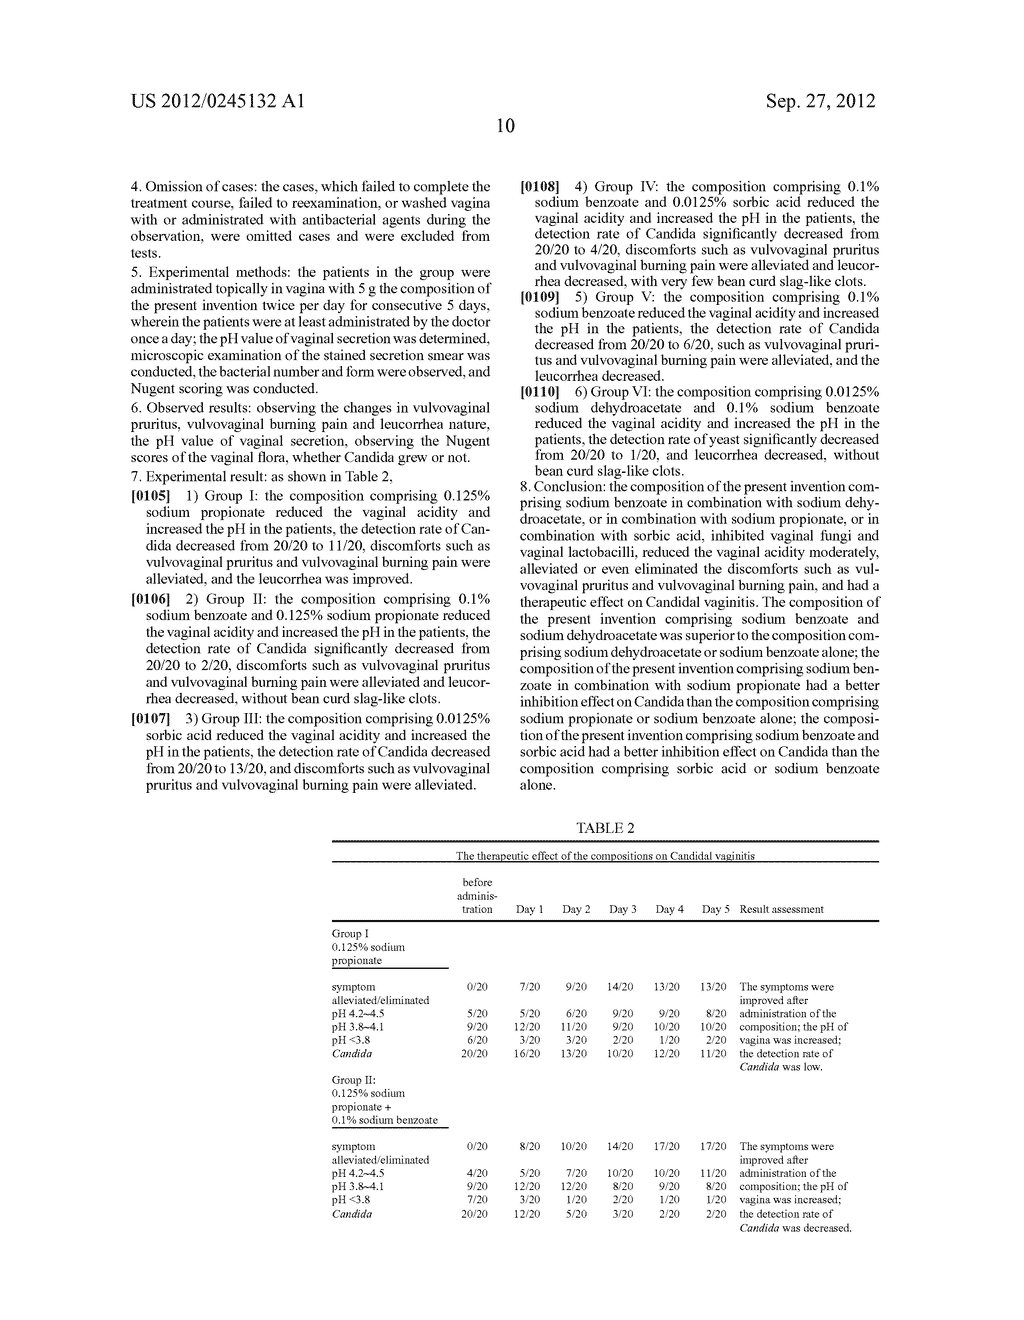 Composition Comprising Benzoic Acid in Combination with Organic Acid     Preservatives as Active Ingredients and the Use Thereof - diagram, schematic, and image 11